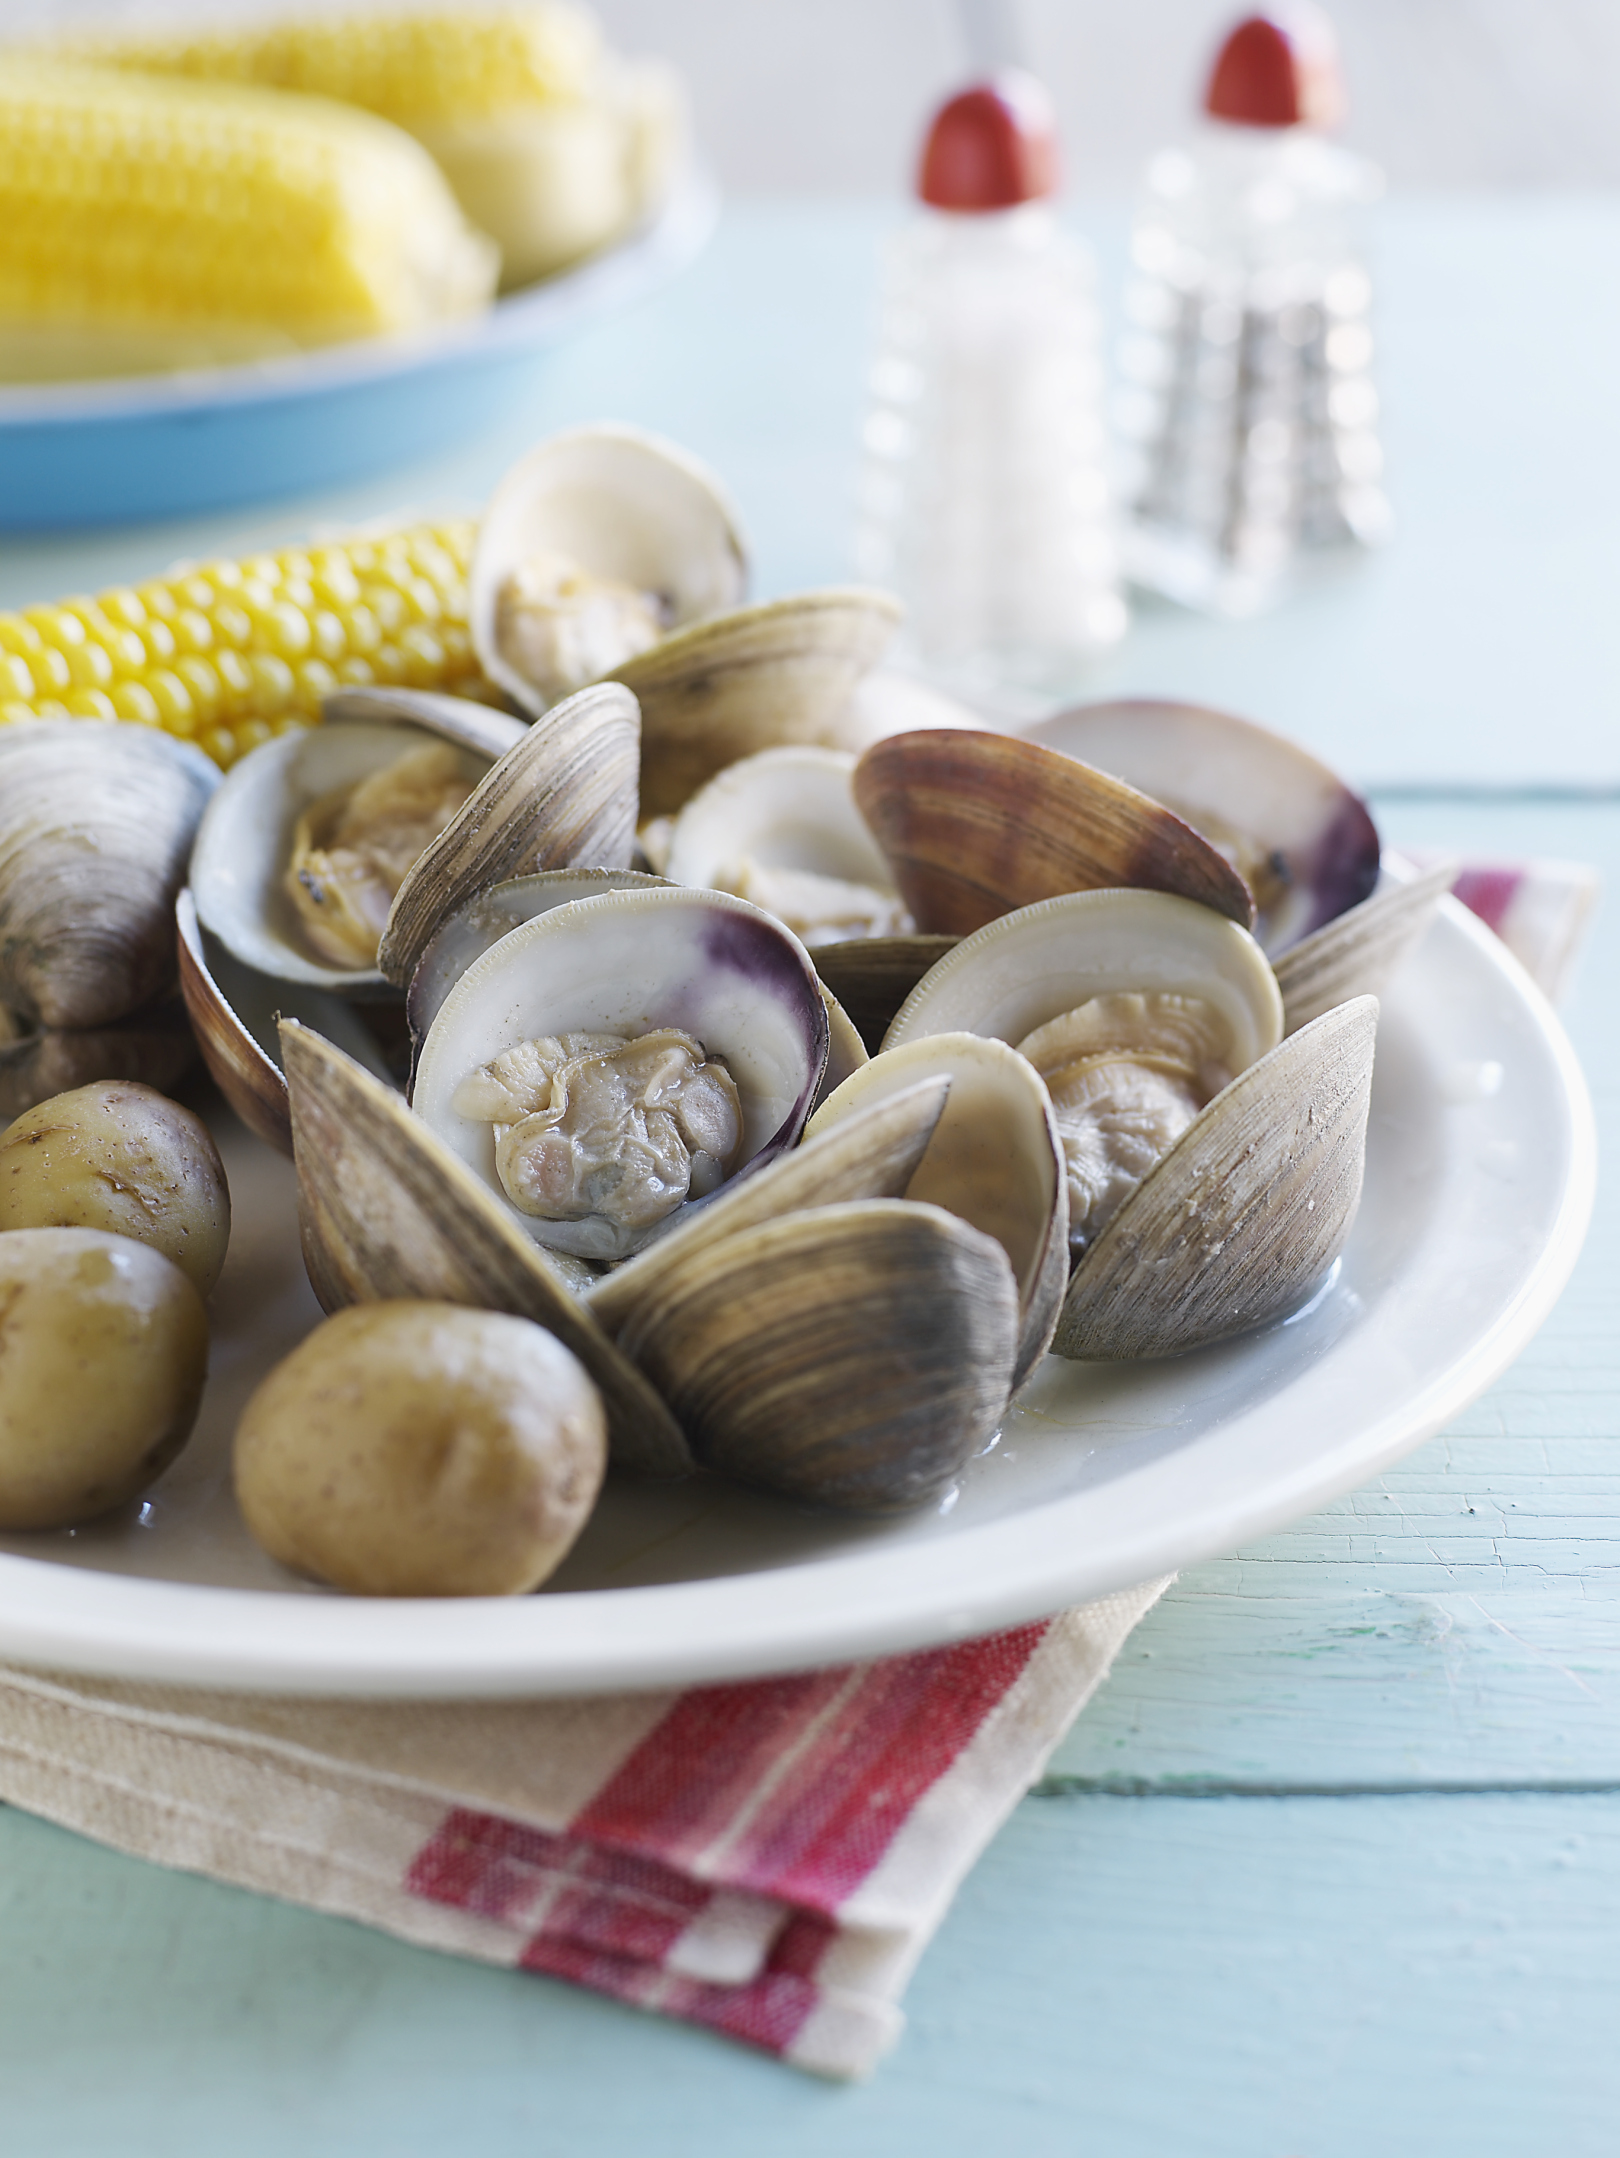 Clams are king for B-12 content.